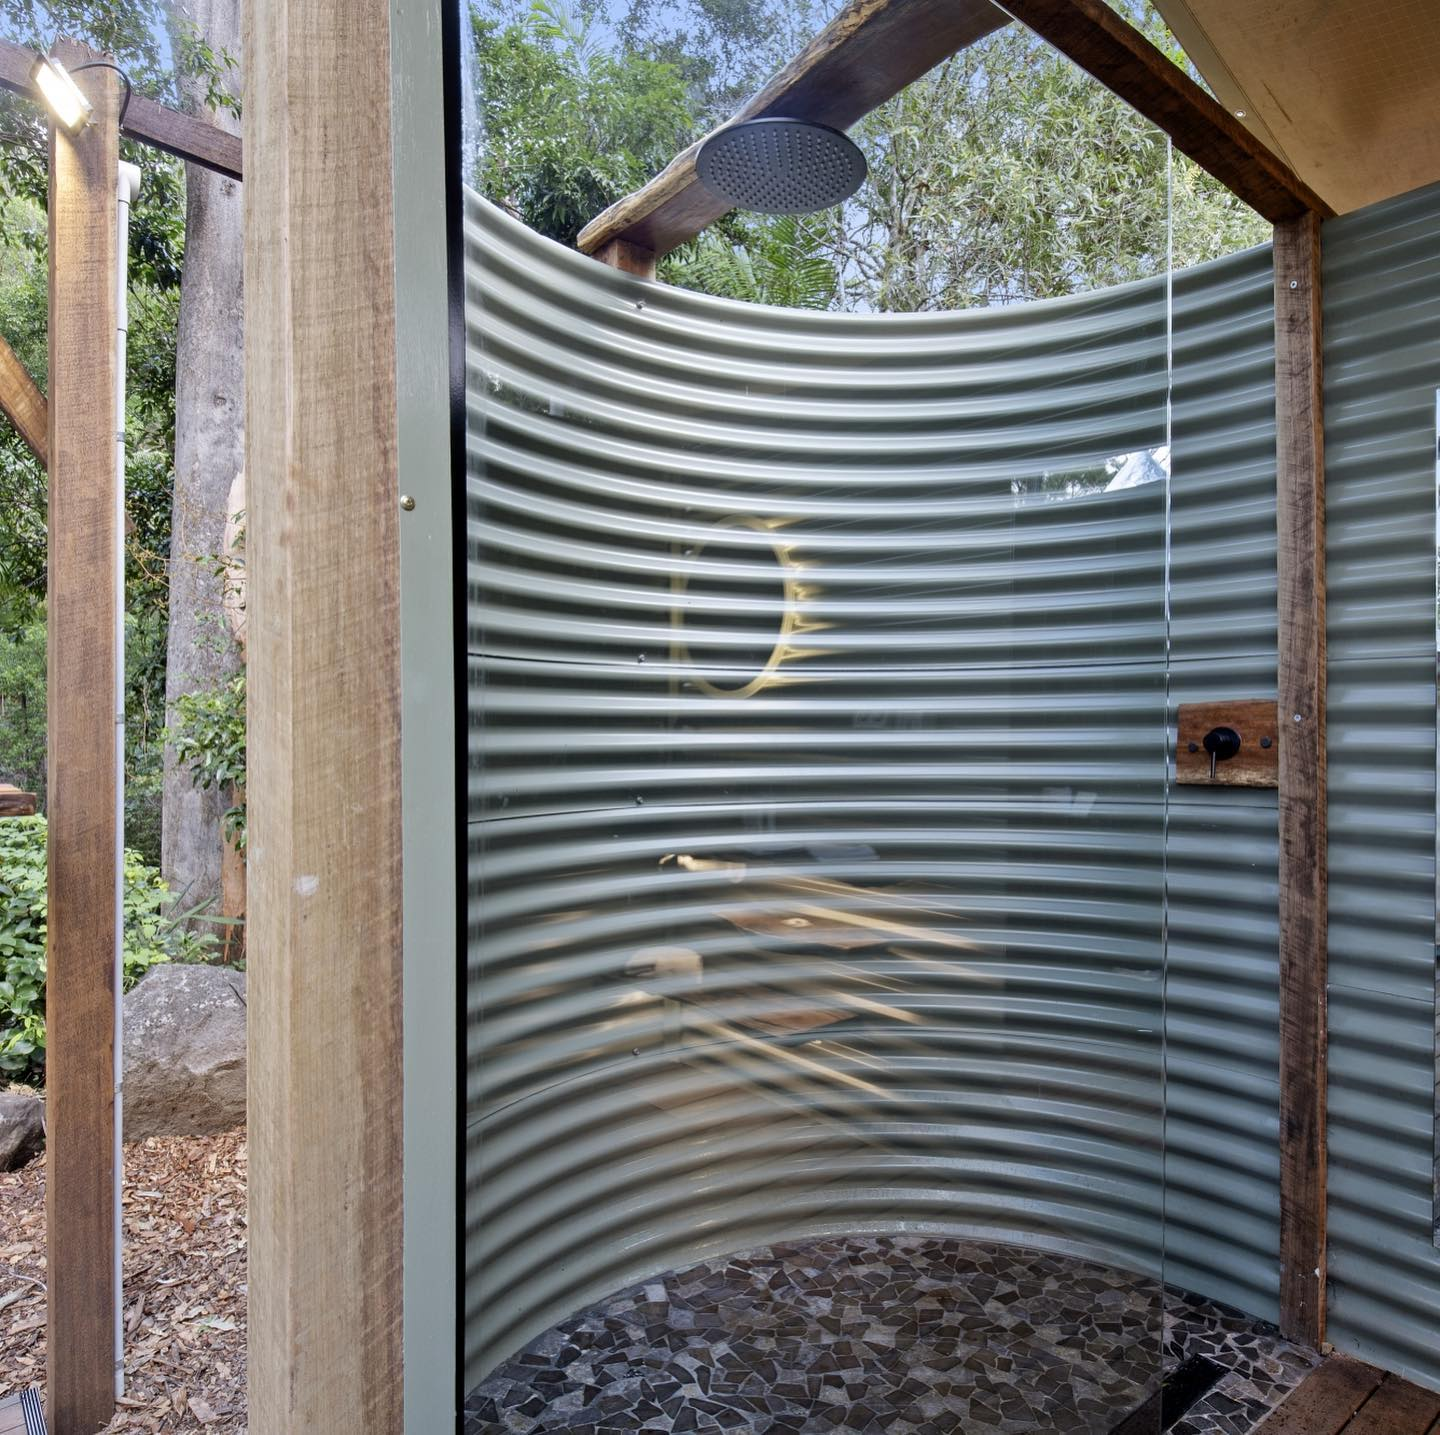 a shower enclosed by corrugated iron with an open roof